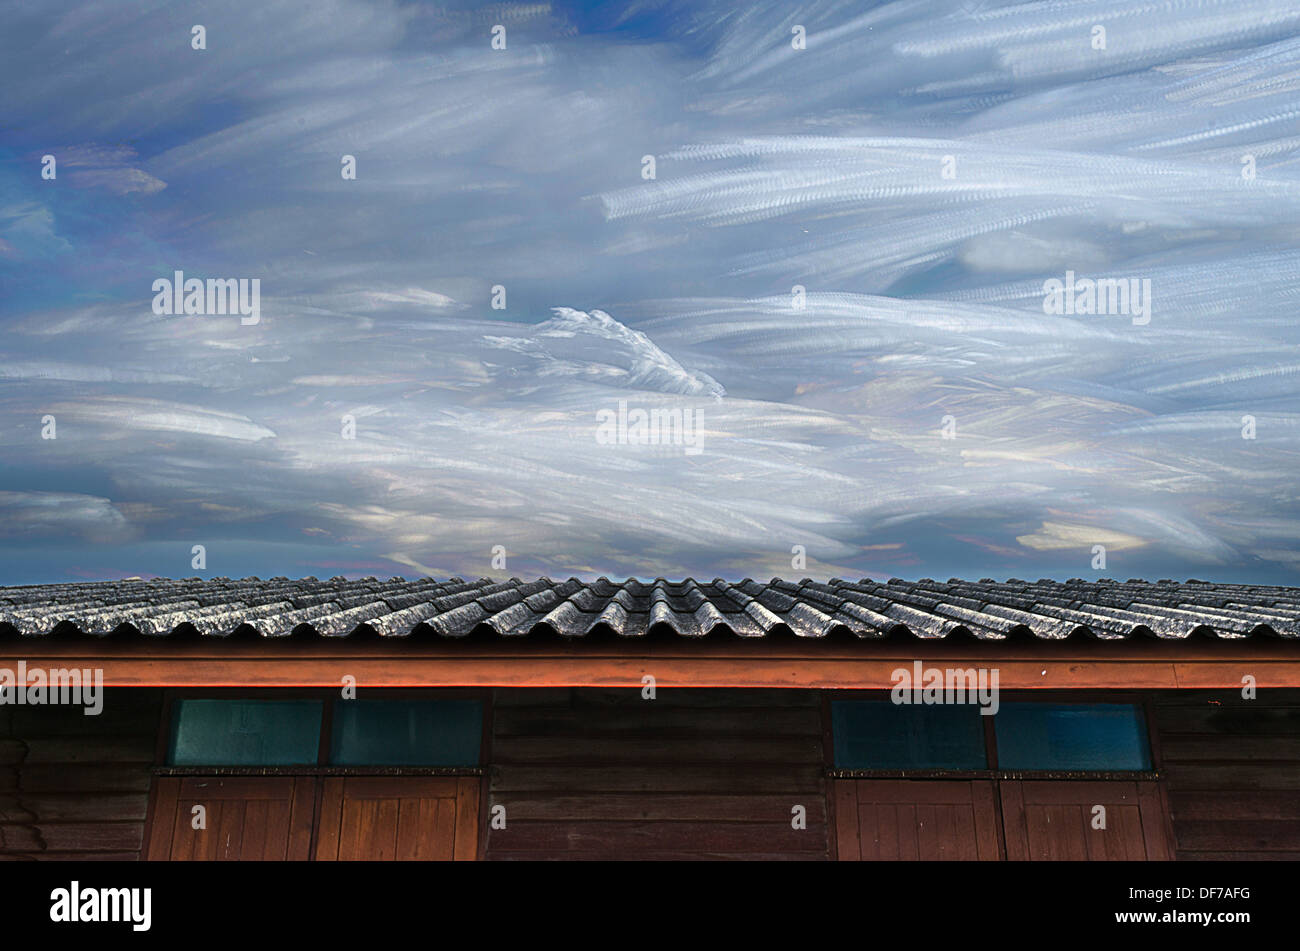 The Moving of Freezing Cloud in Blue Sky Over Roof of Wooden House. - Stock Image